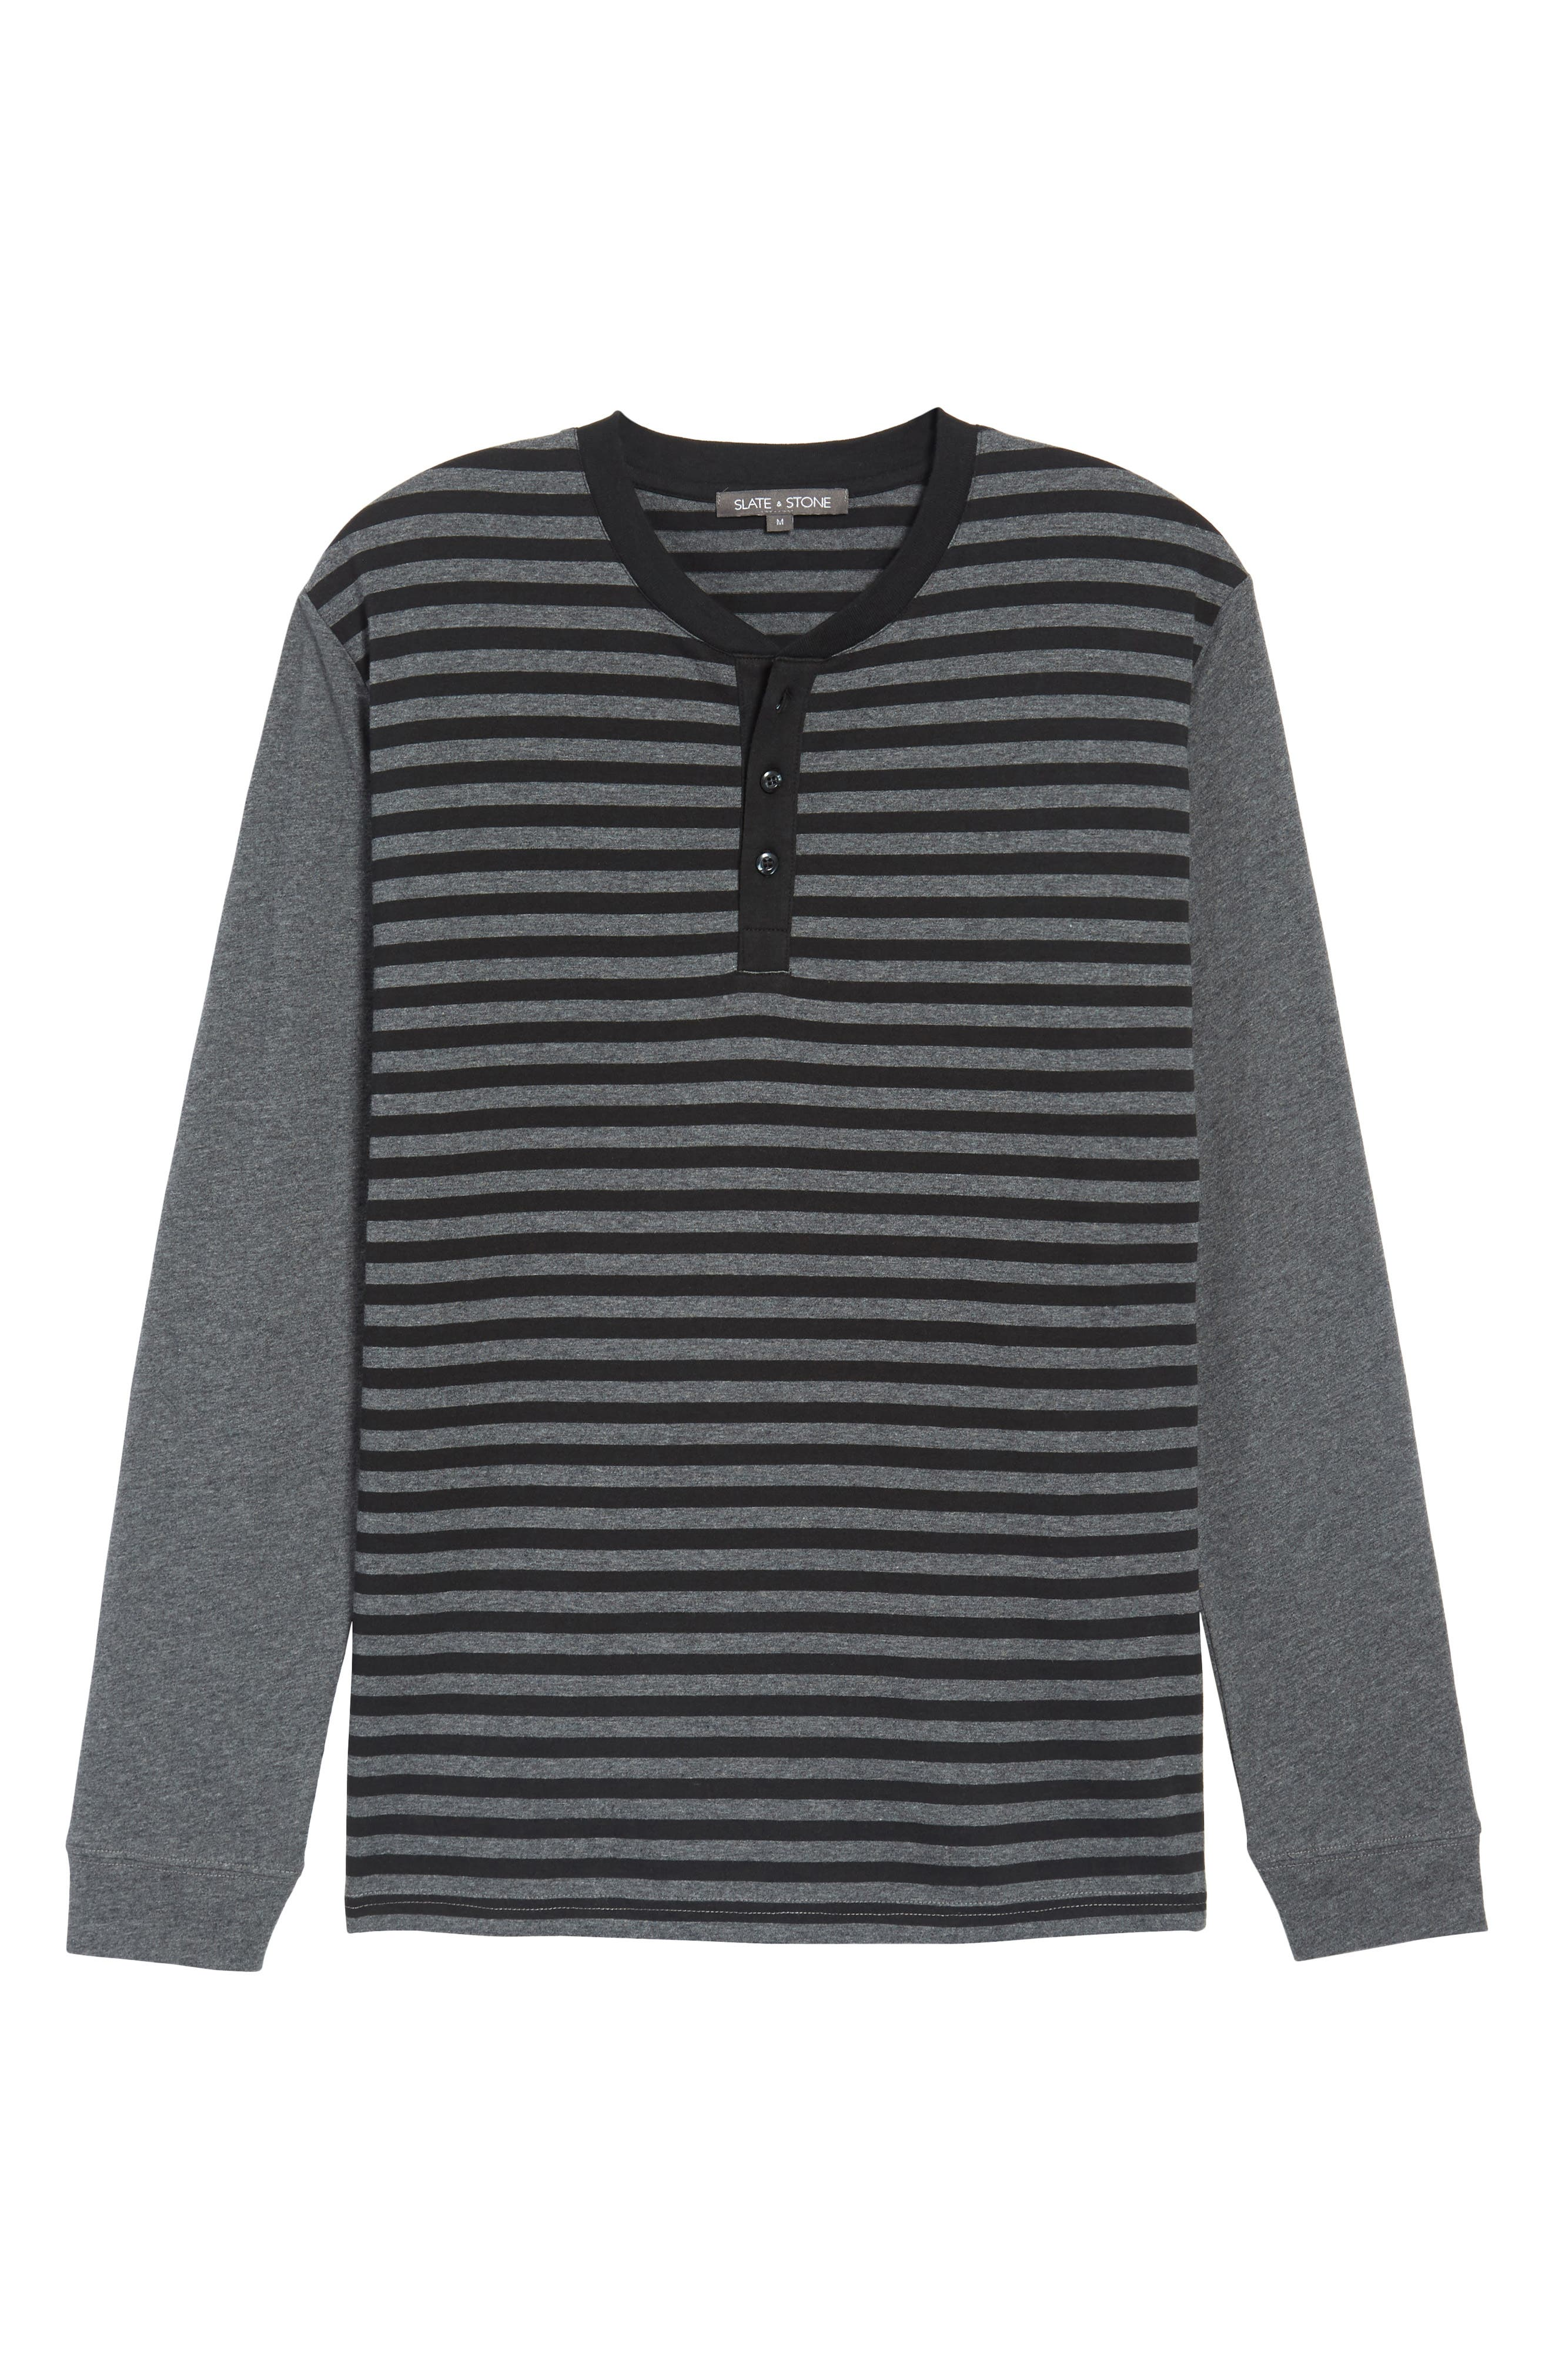 Striped Long Sleeve Henley T-Shirt,                             Alternate thumbnail 6, color,                             081